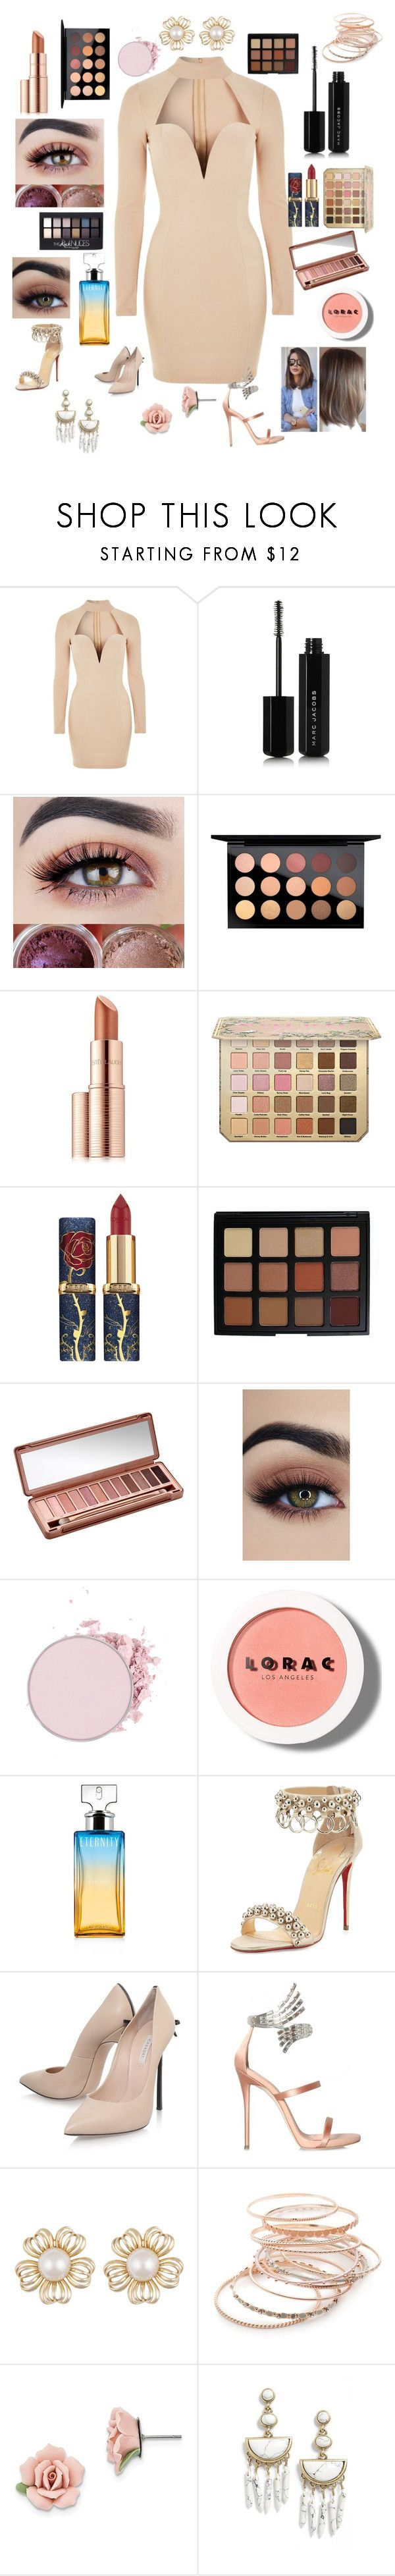 """""""high school reunion number one"""" by coolc-hi ❤ liked on Polyvore featuring Rare London, Marc Jacobs, MAC Cosmetics, Maybelline, Estée Lauder, Morphe, Urban Decay, LORAC, Calvin Klein and Christian Louboutin"""